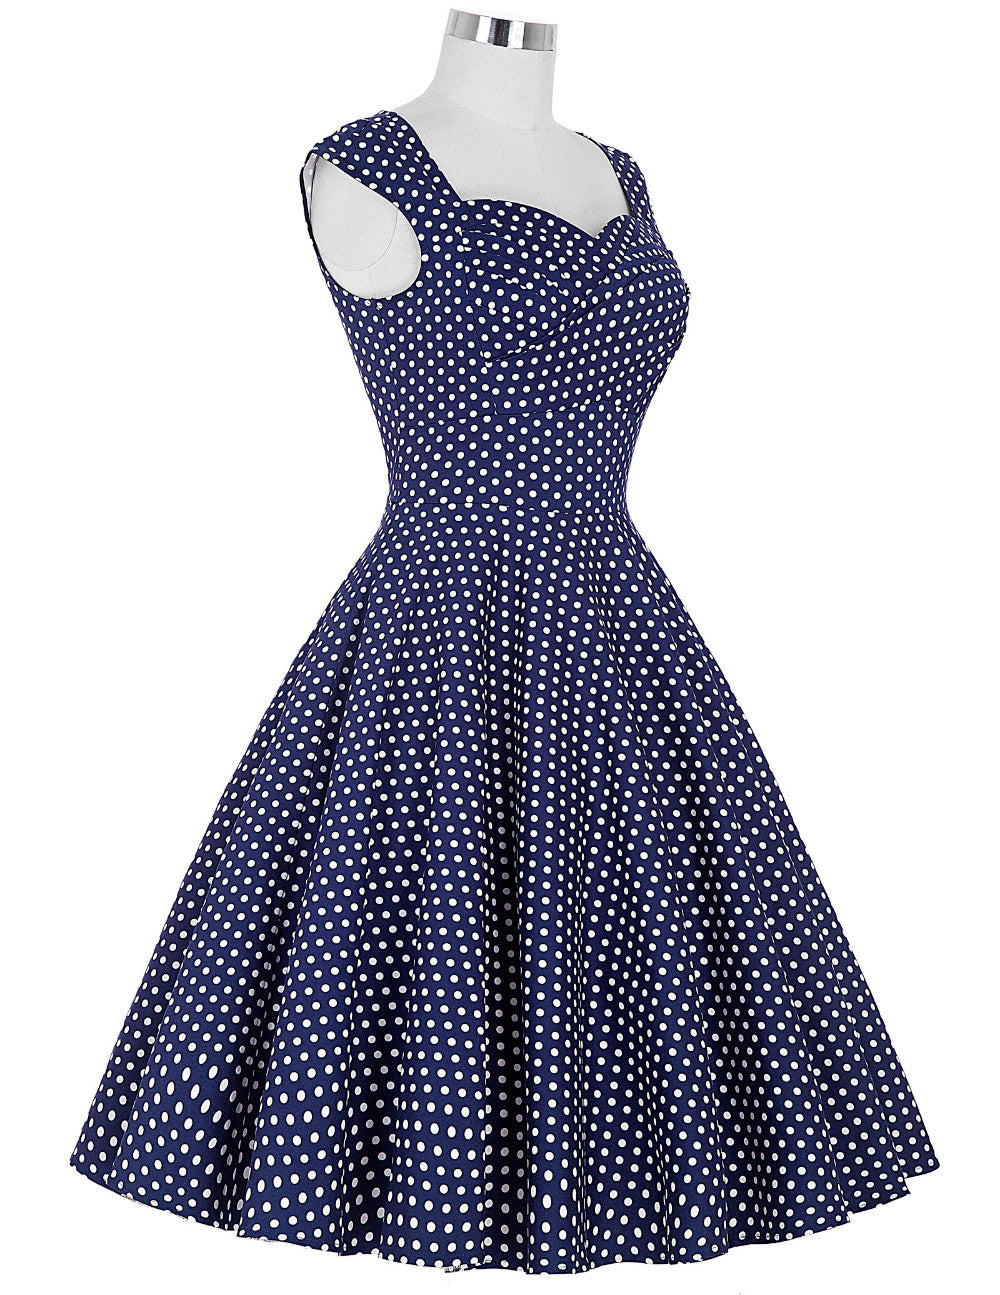 The Belle Dress in Navy and White Polka Dots by Ponyboy Vintage Clothing!